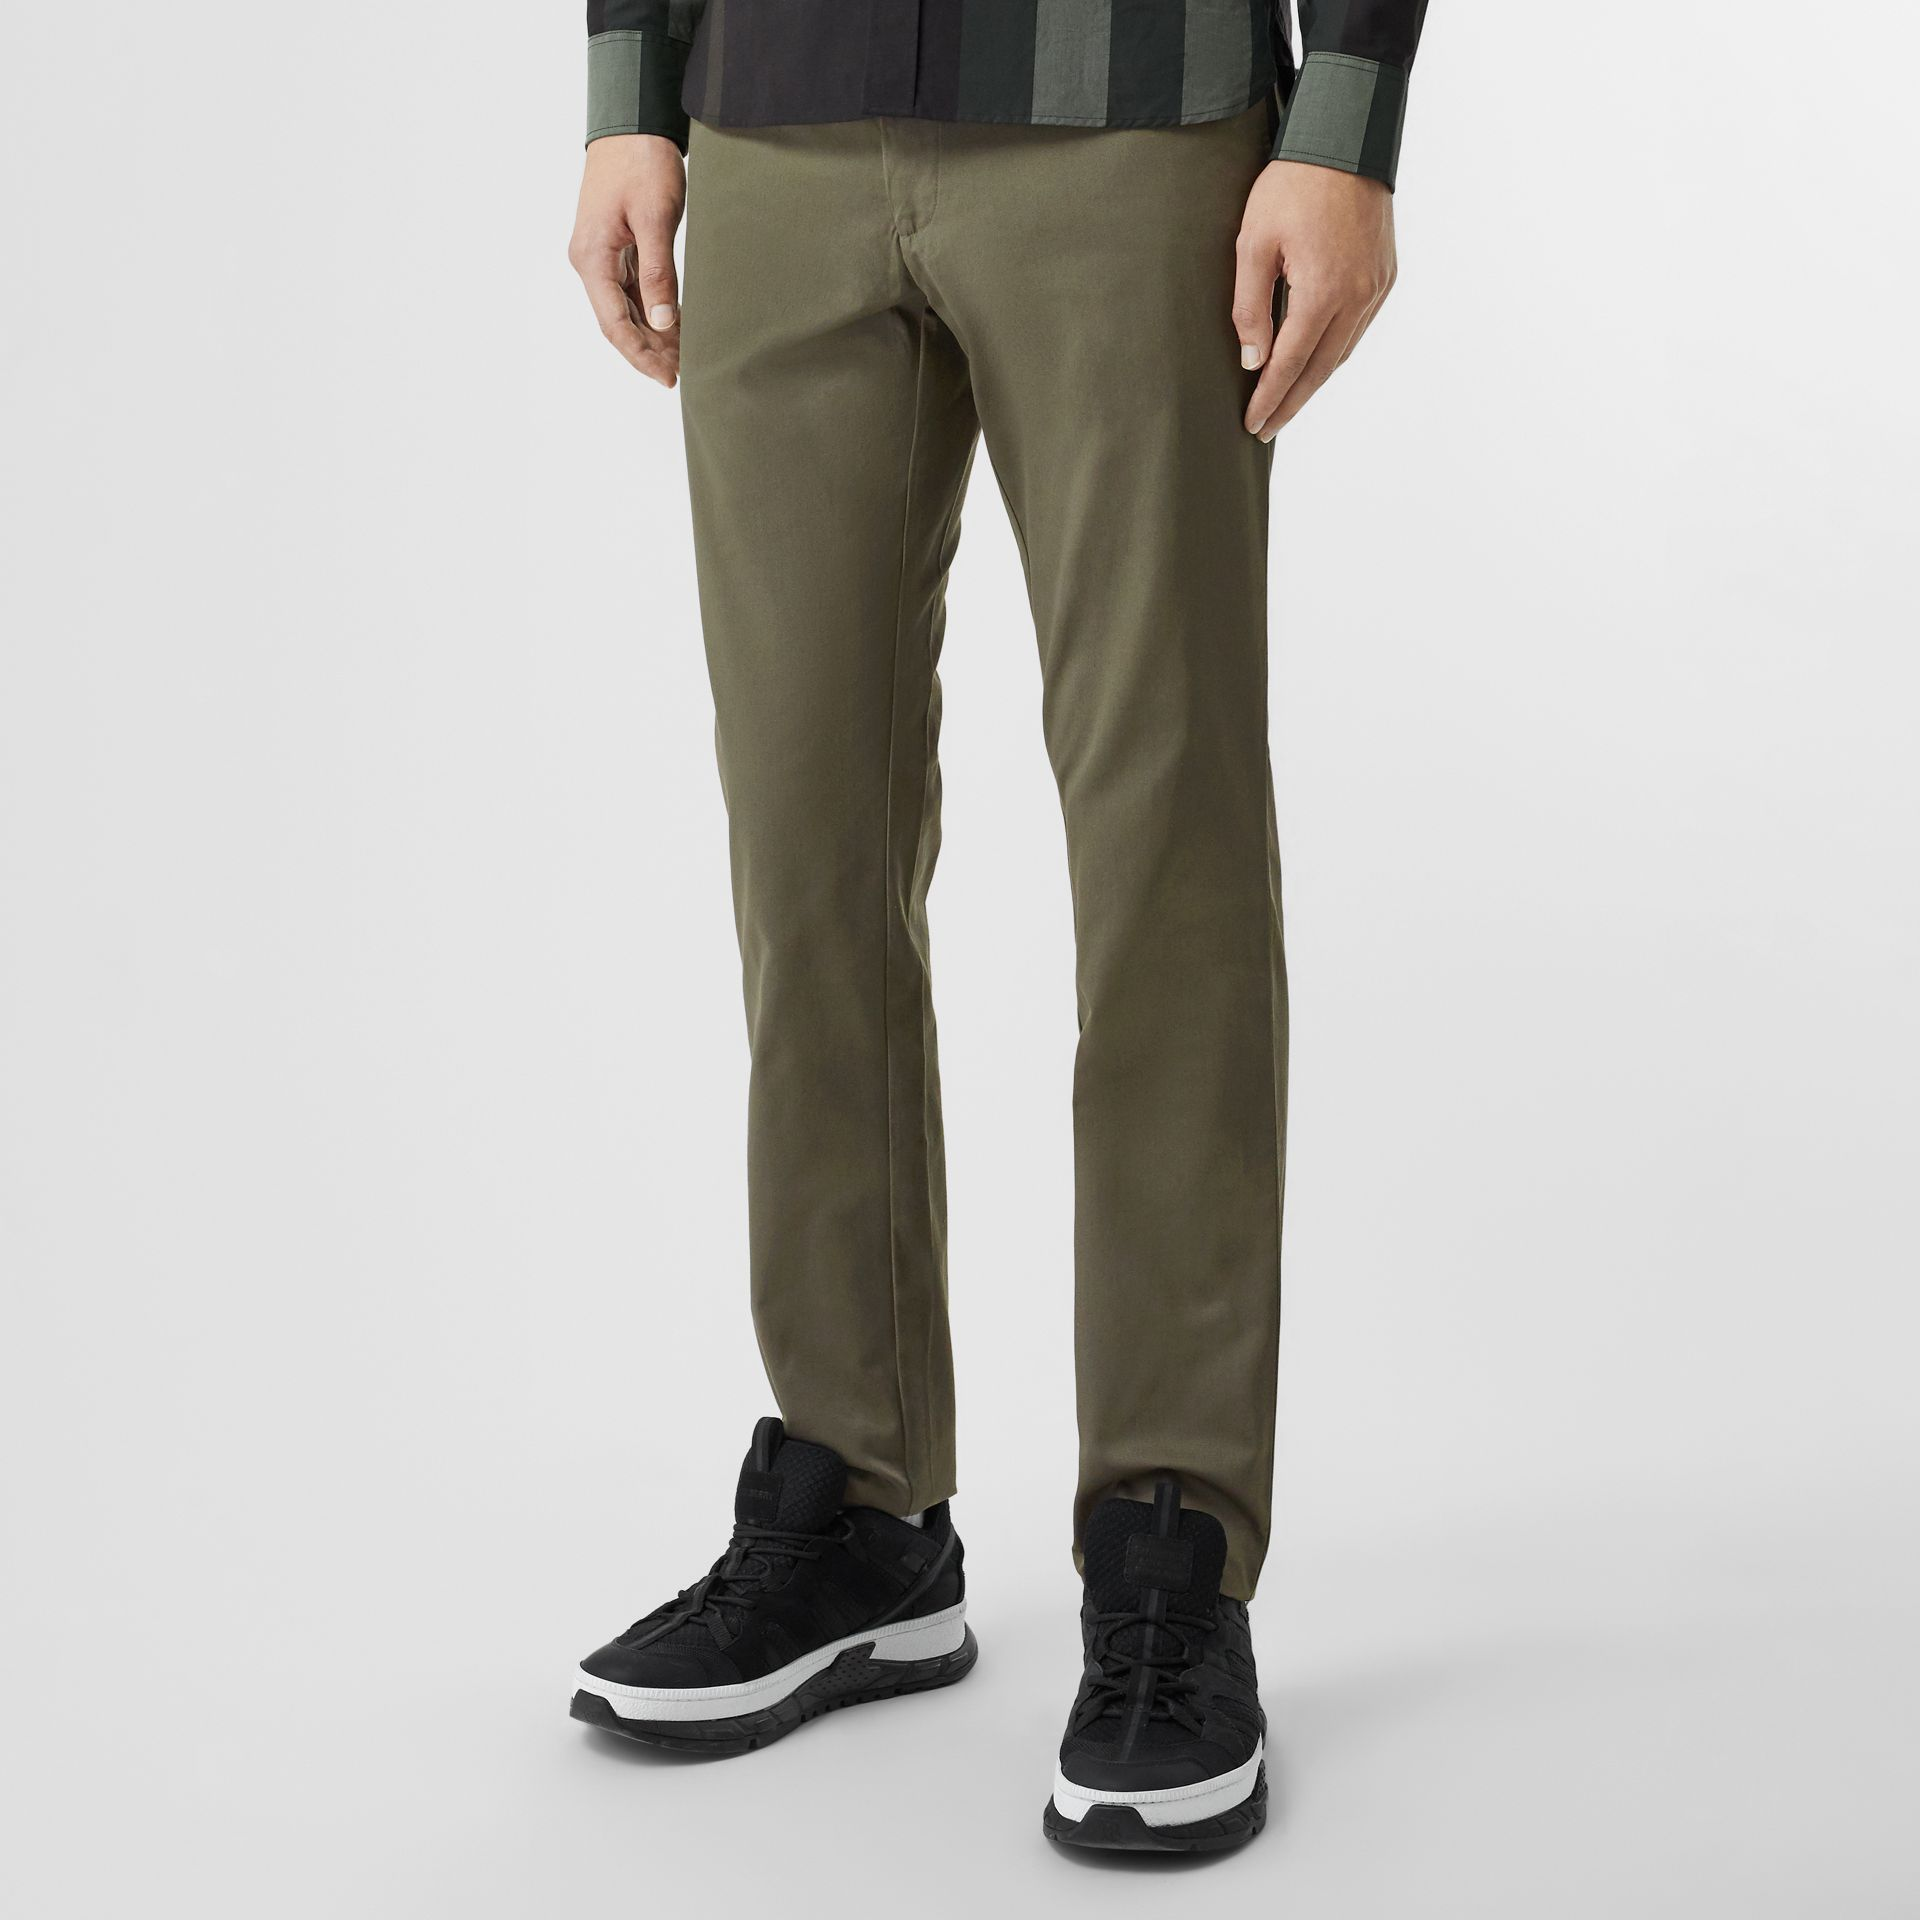 Slim Fit Cotton Chinos in Military Green - Men | Burberry - gallery image 4